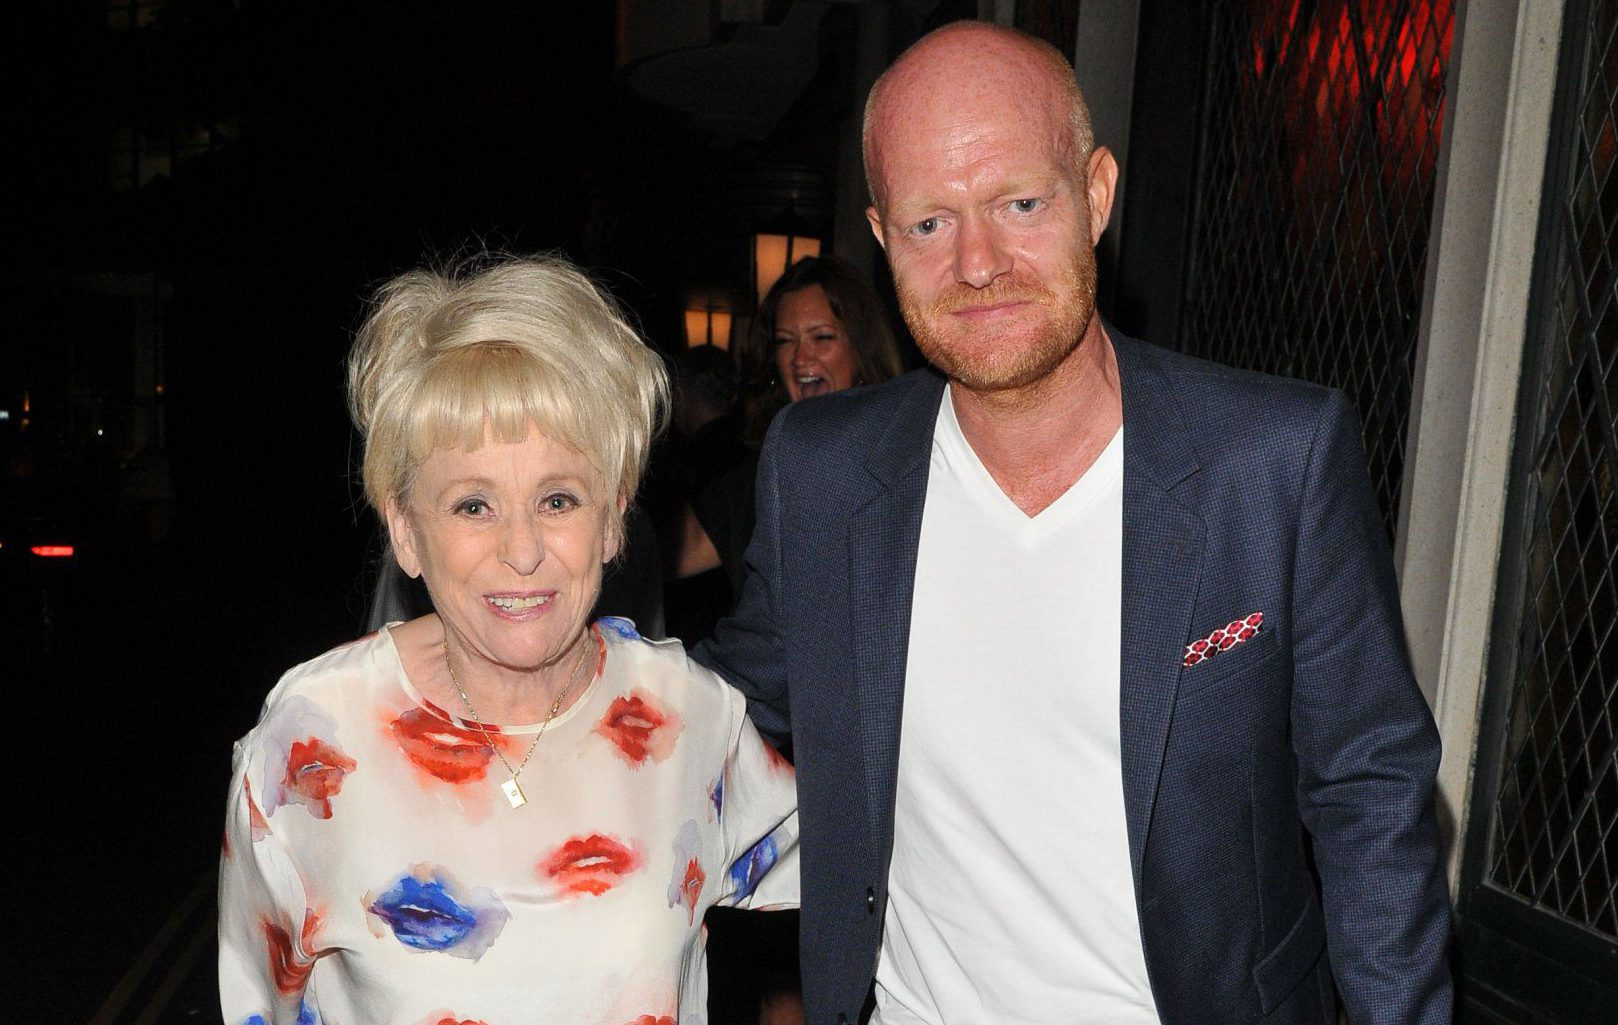 Jake Wood says Barbara Windsor has 'good days and bad days' after Alzheimer's diagnosis